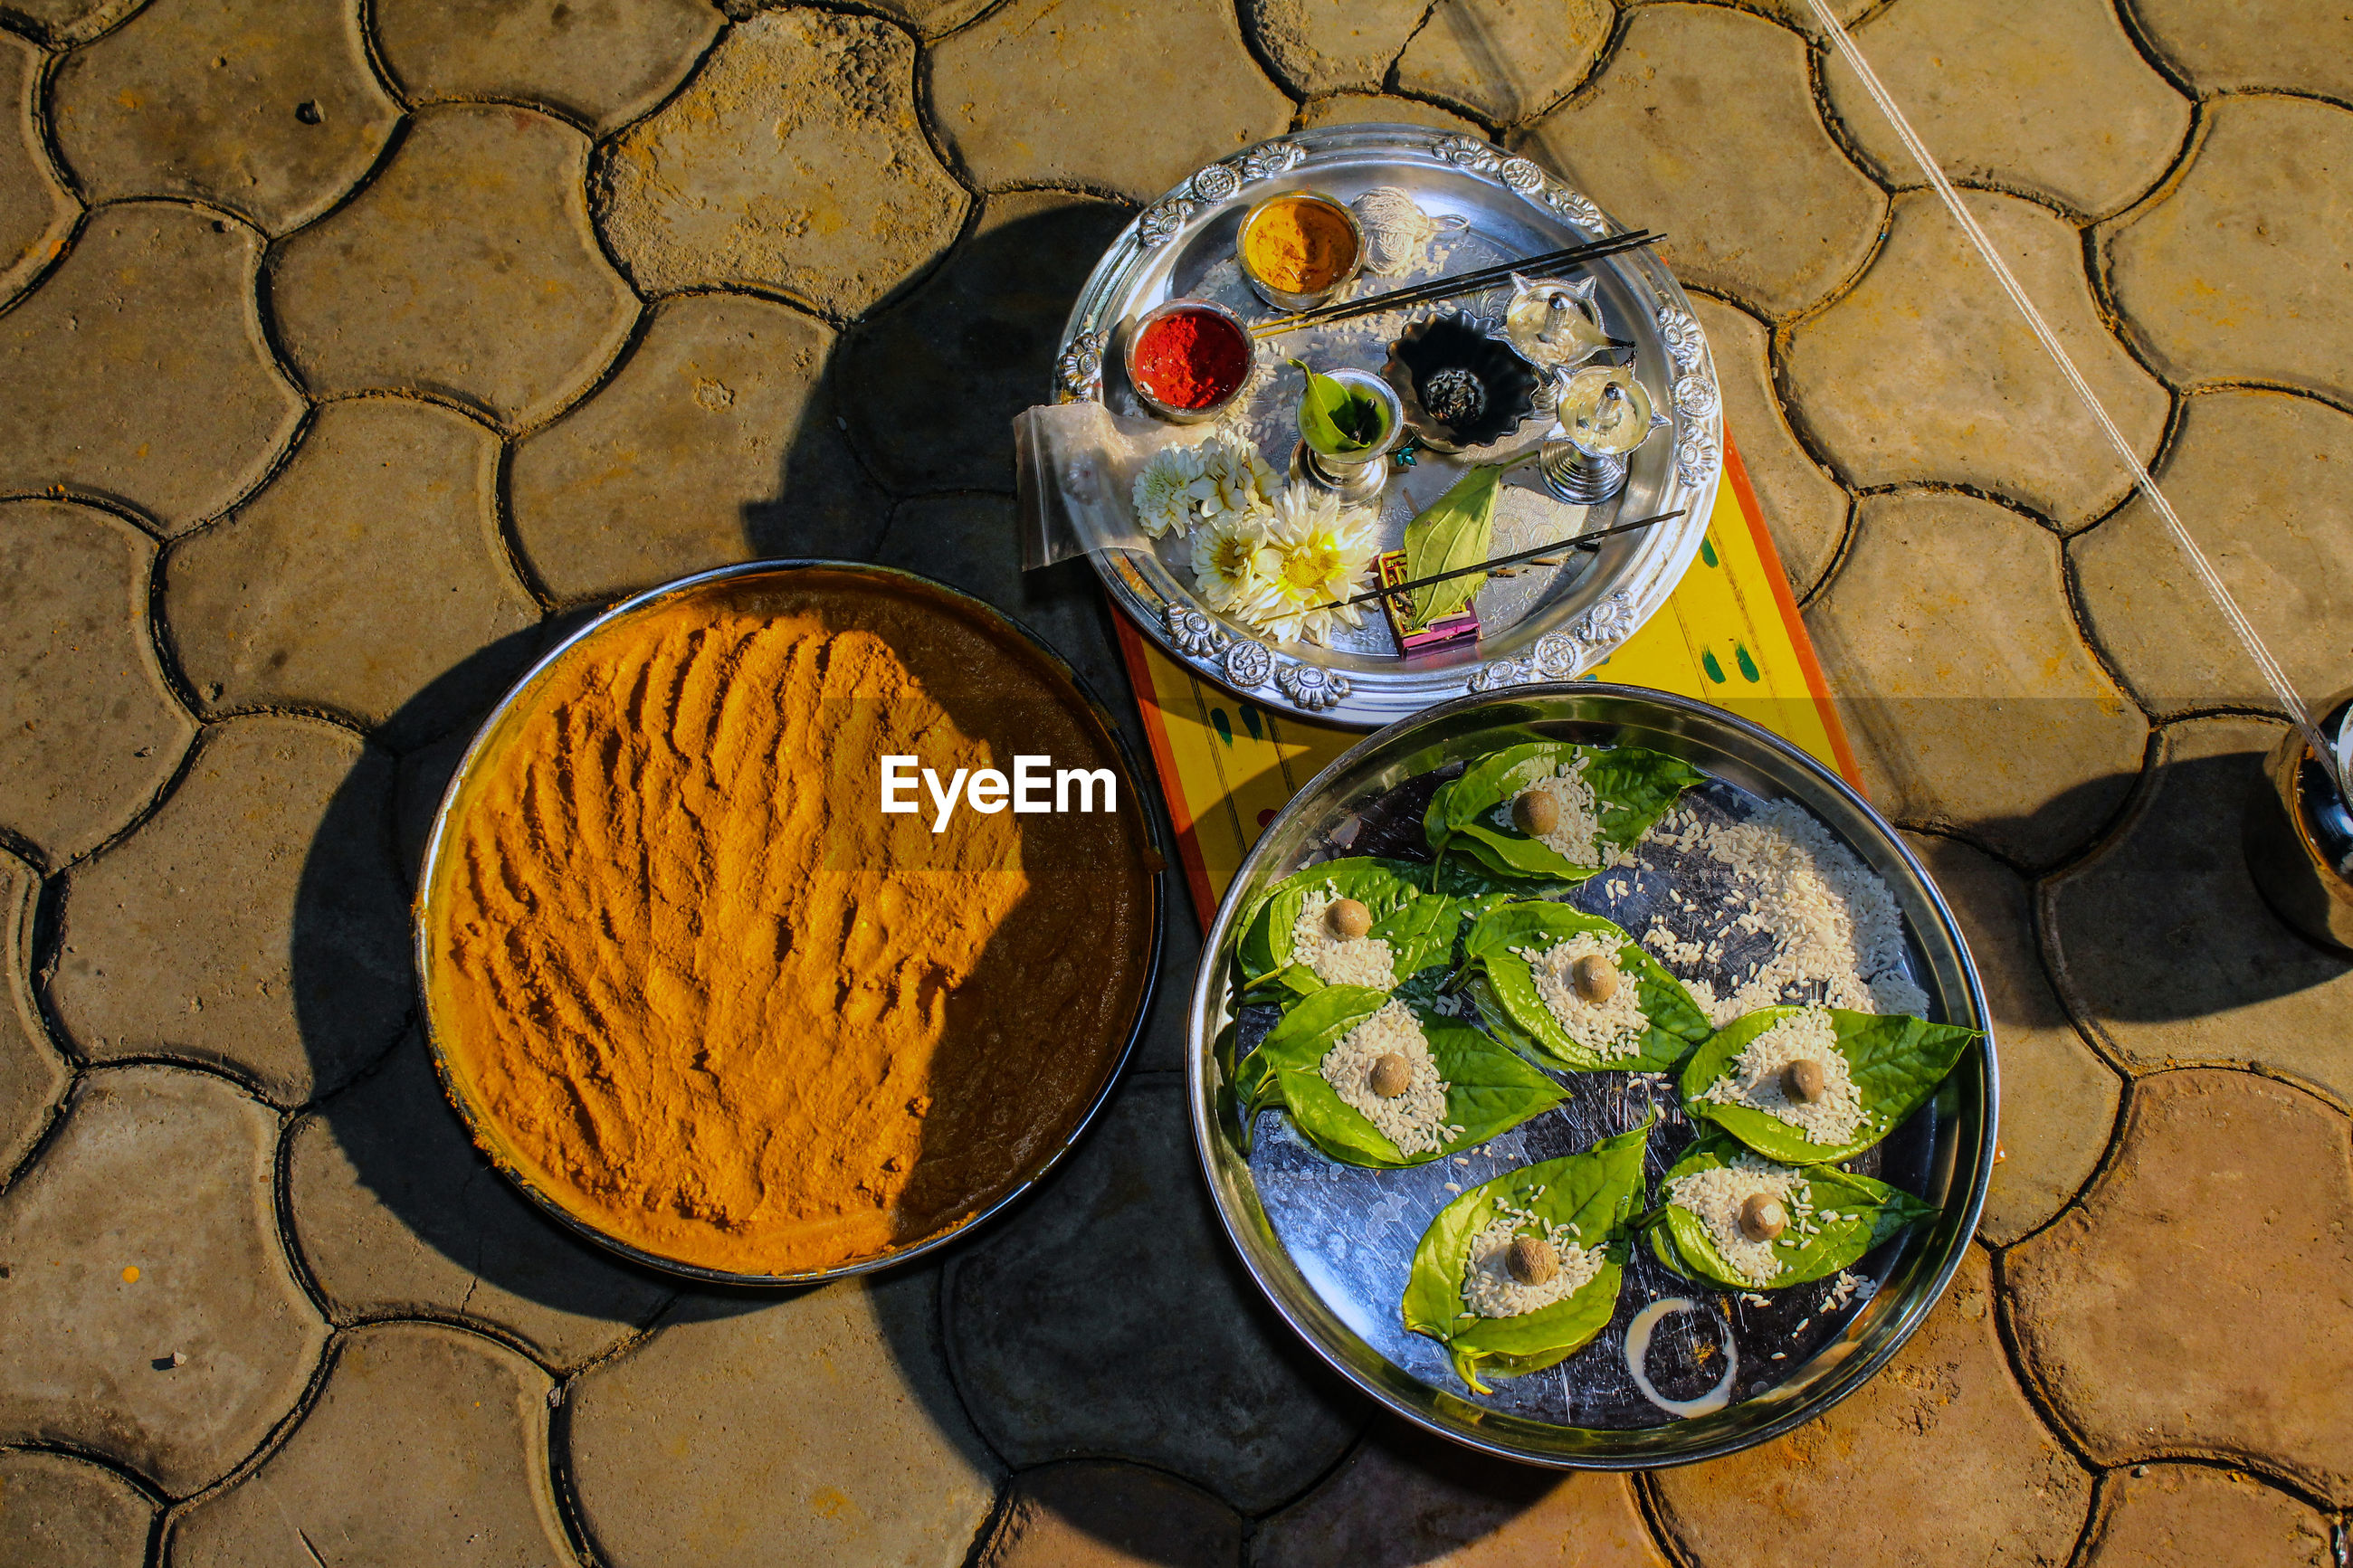 HIGH ANGLE VIEW OF FOOD IN CONTAINER ON TABLE